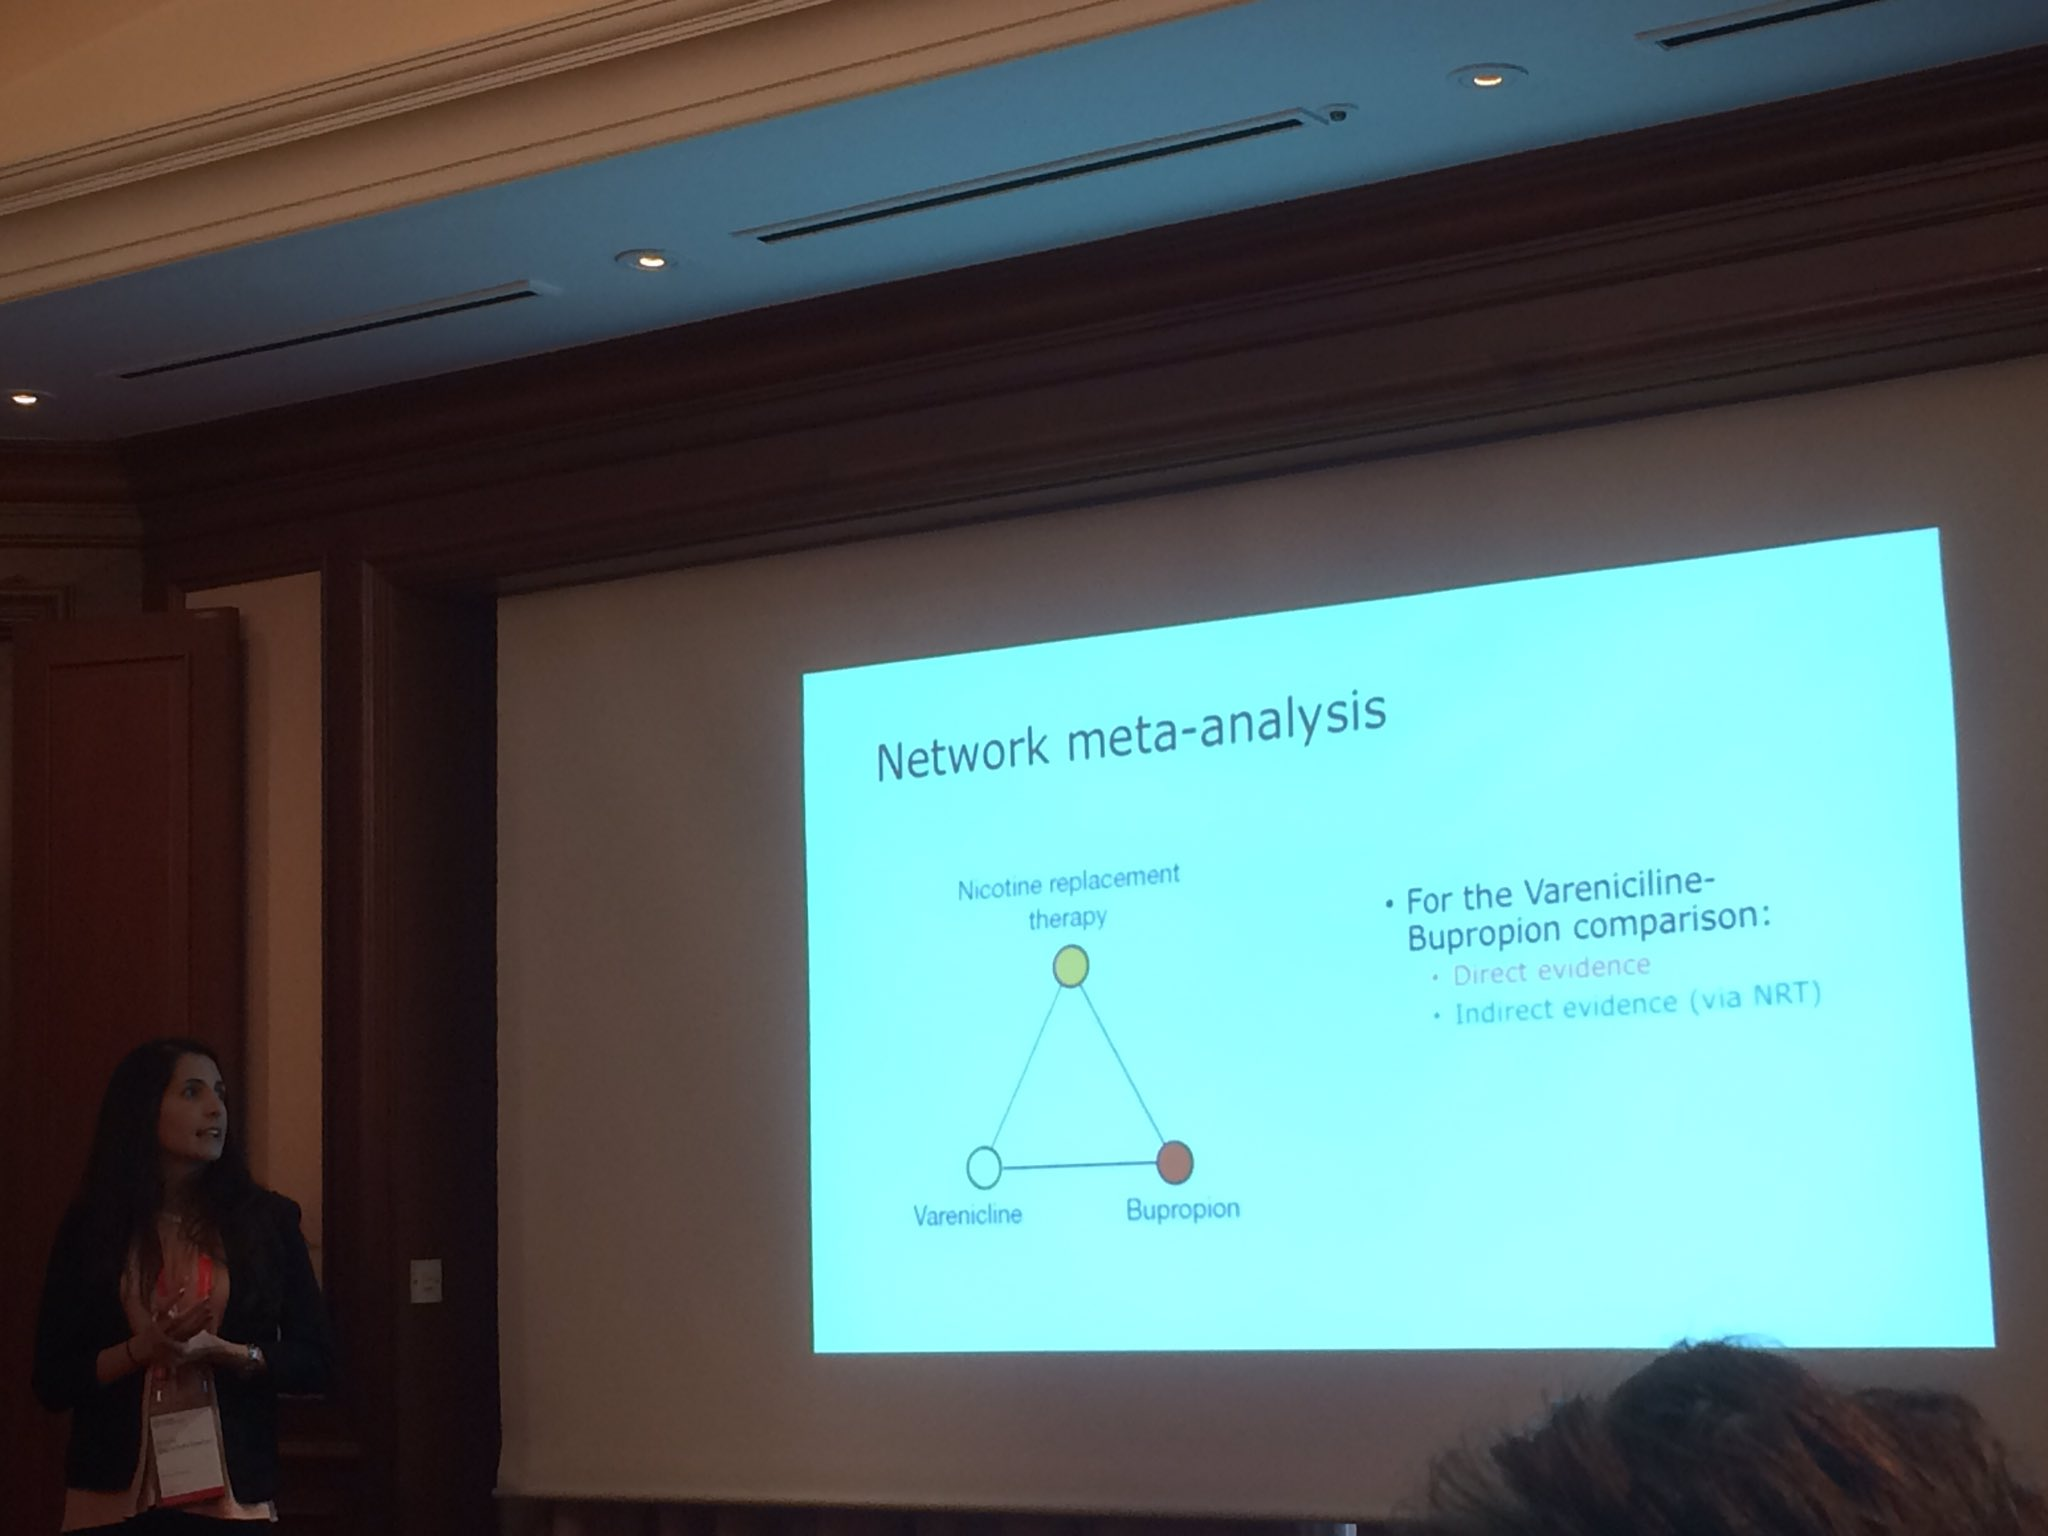 How to judge uncertainty in network meta analysis #CochraneSeoul https://t.co/DQ3sSHt4xU